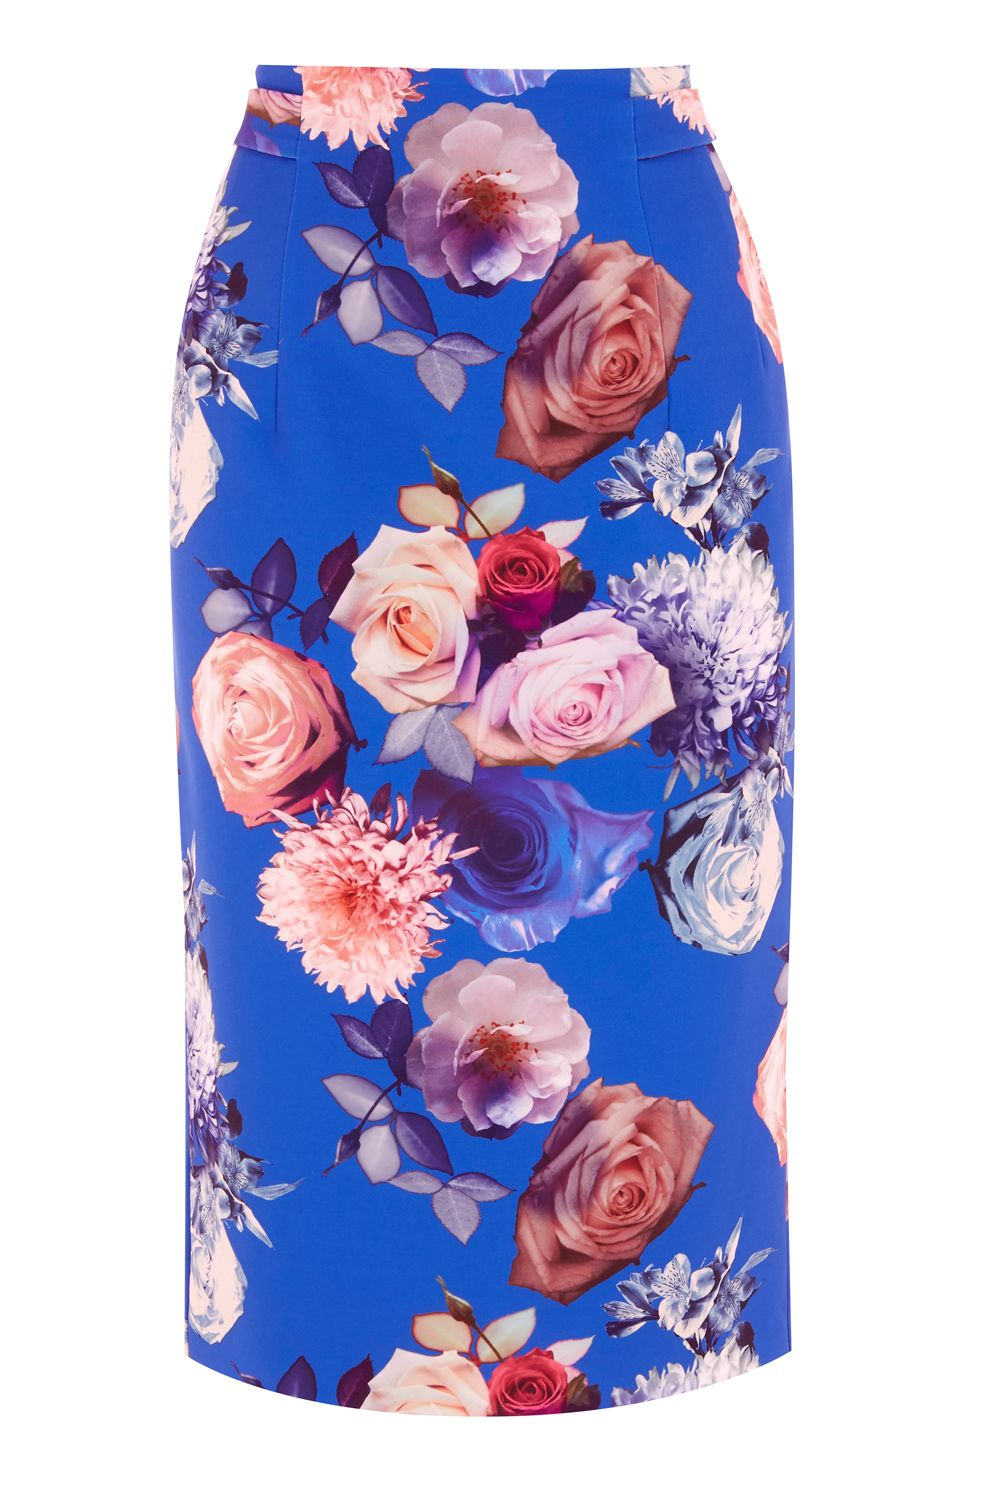 Oasis ROSE PRINT PENCIL SKIRT, Multi-Coloured